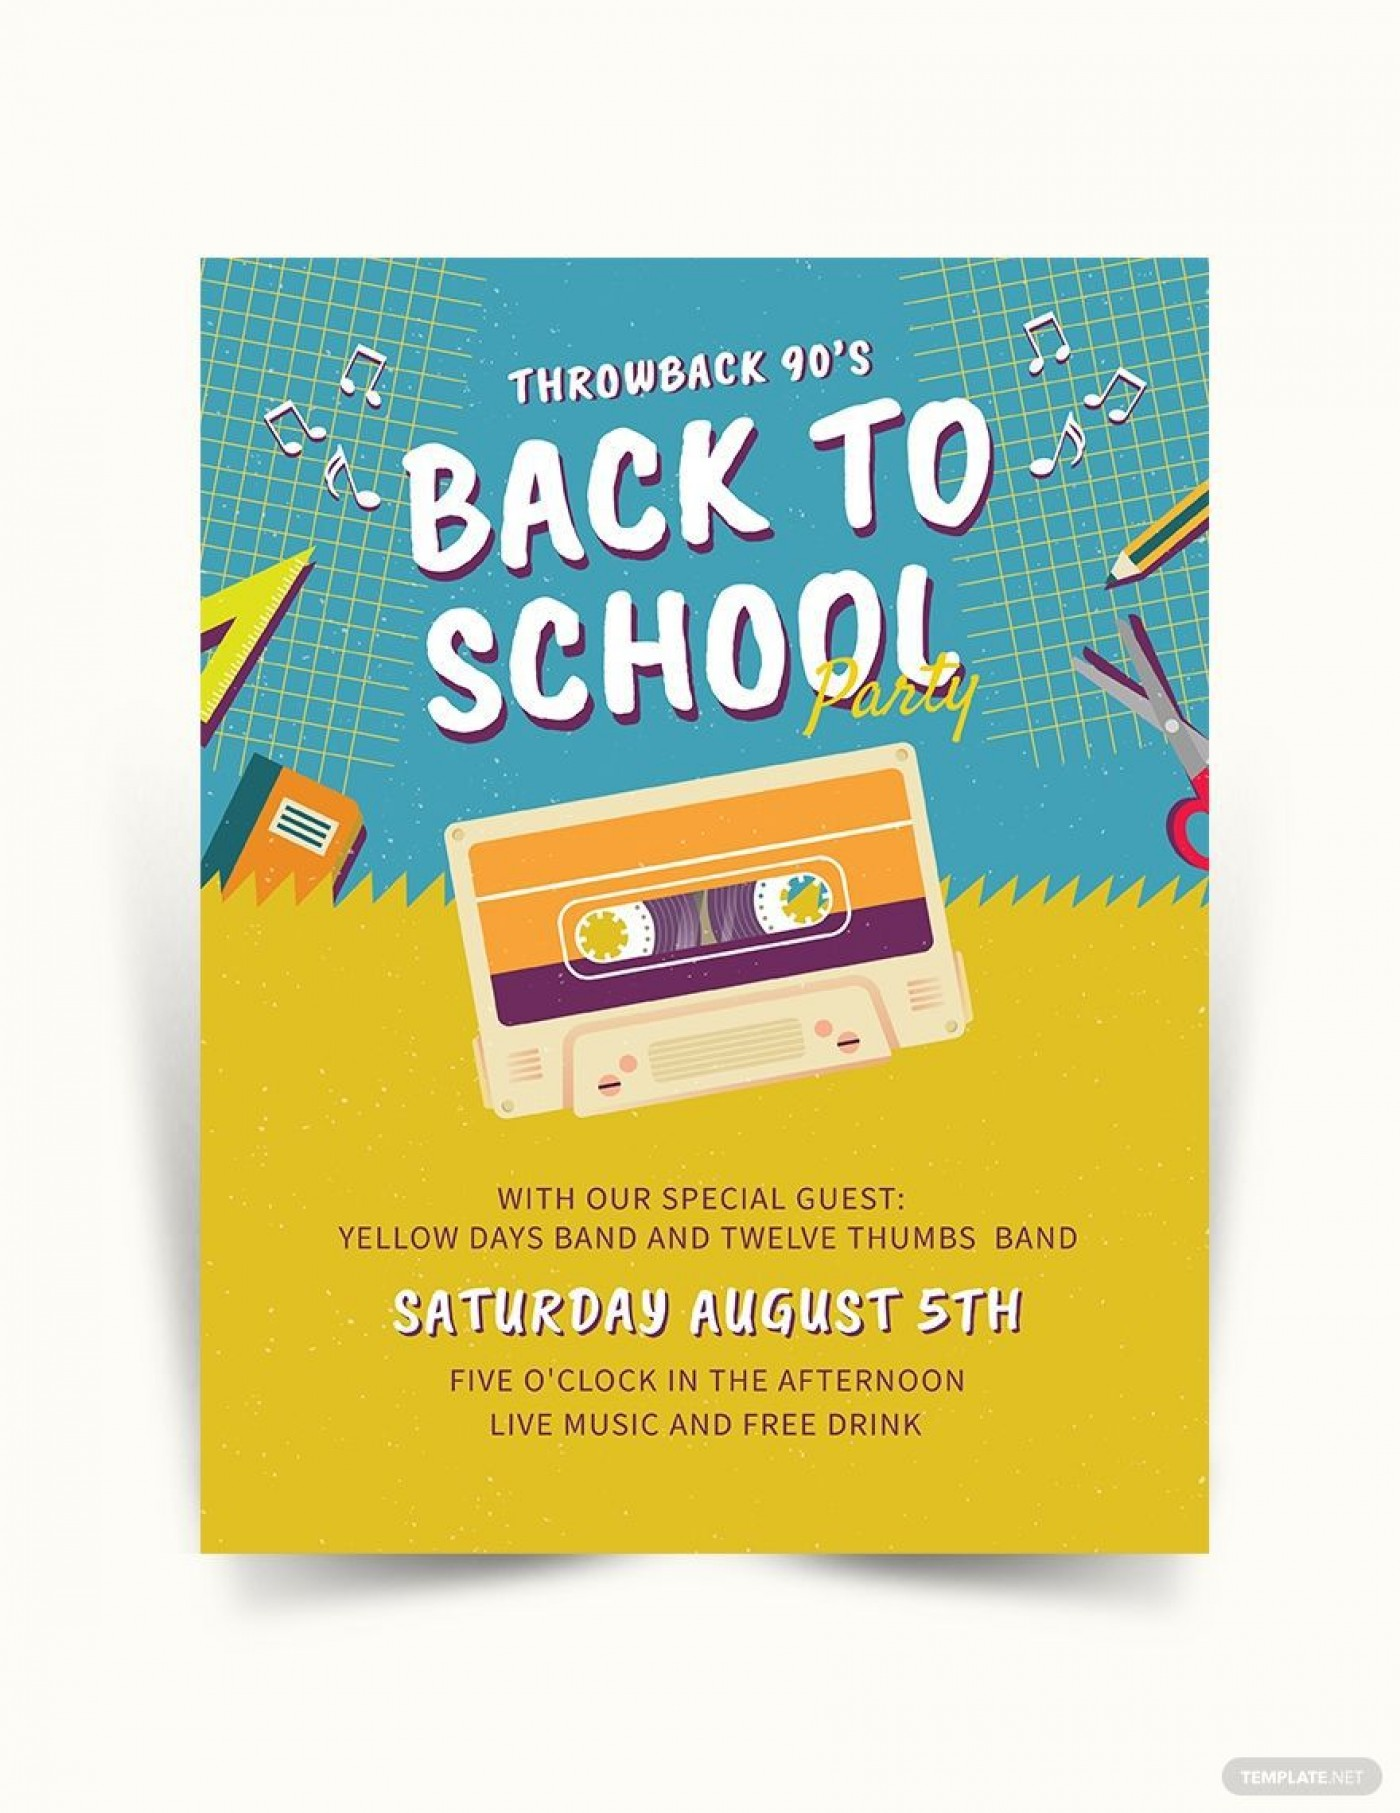 005 Rare Free Back To School Flyer Template Word Idea 1400